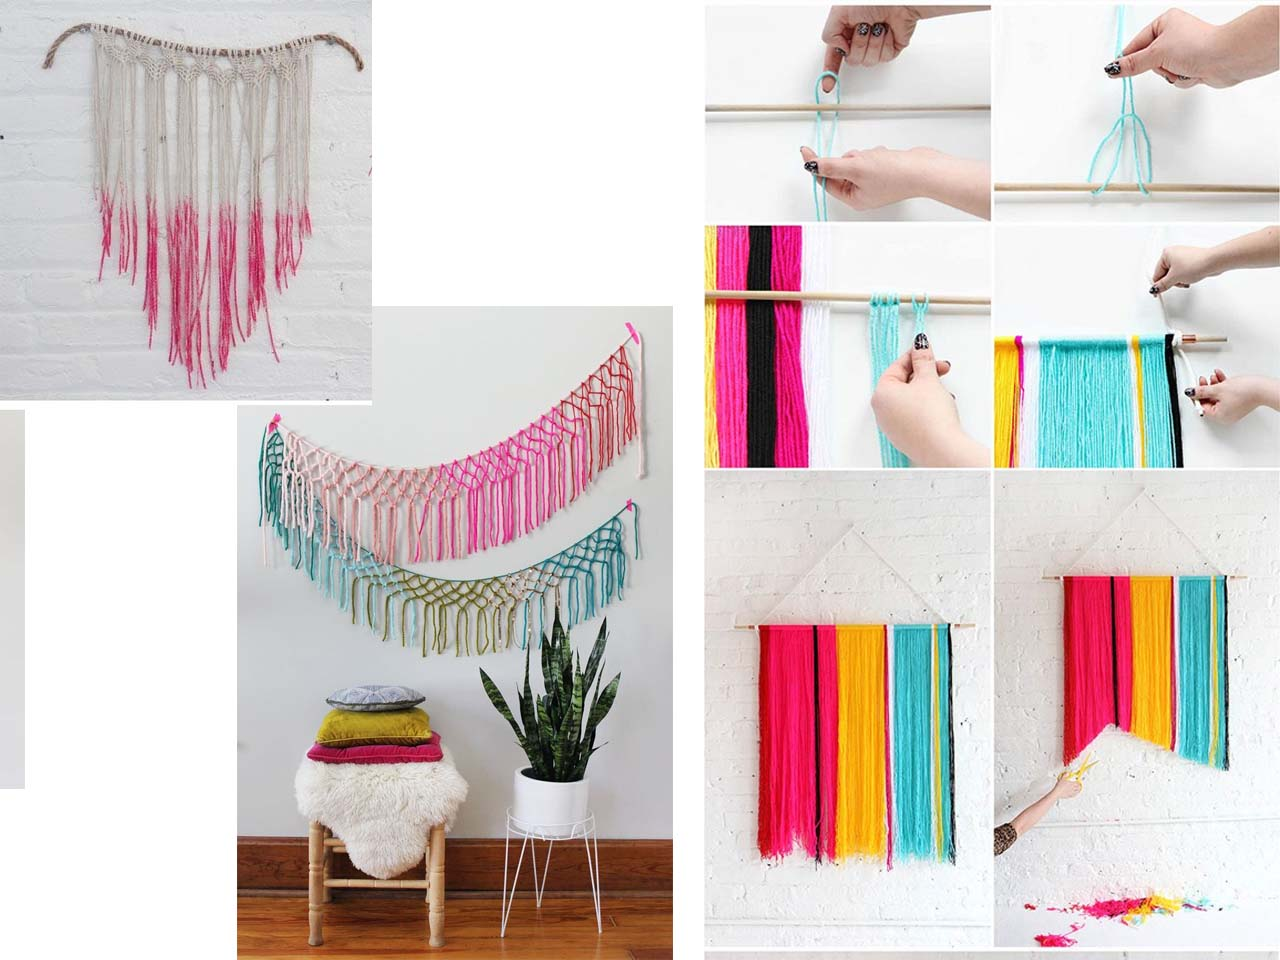 15 Manualidades Para Decorar Paredes - Decoracin-manualidades